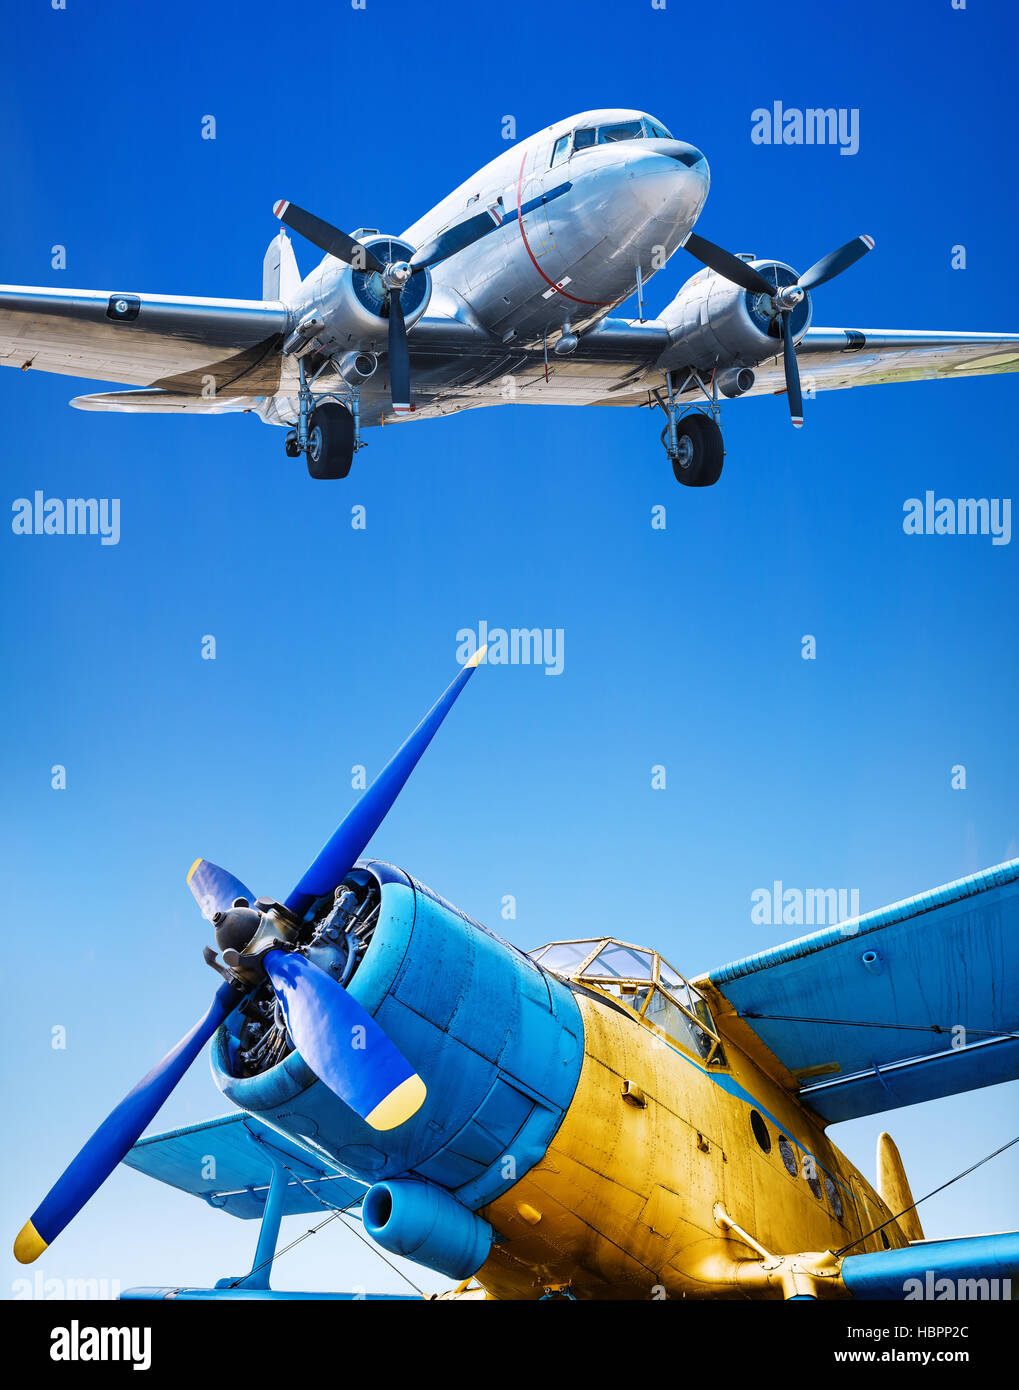 old airplanes - Stock Image